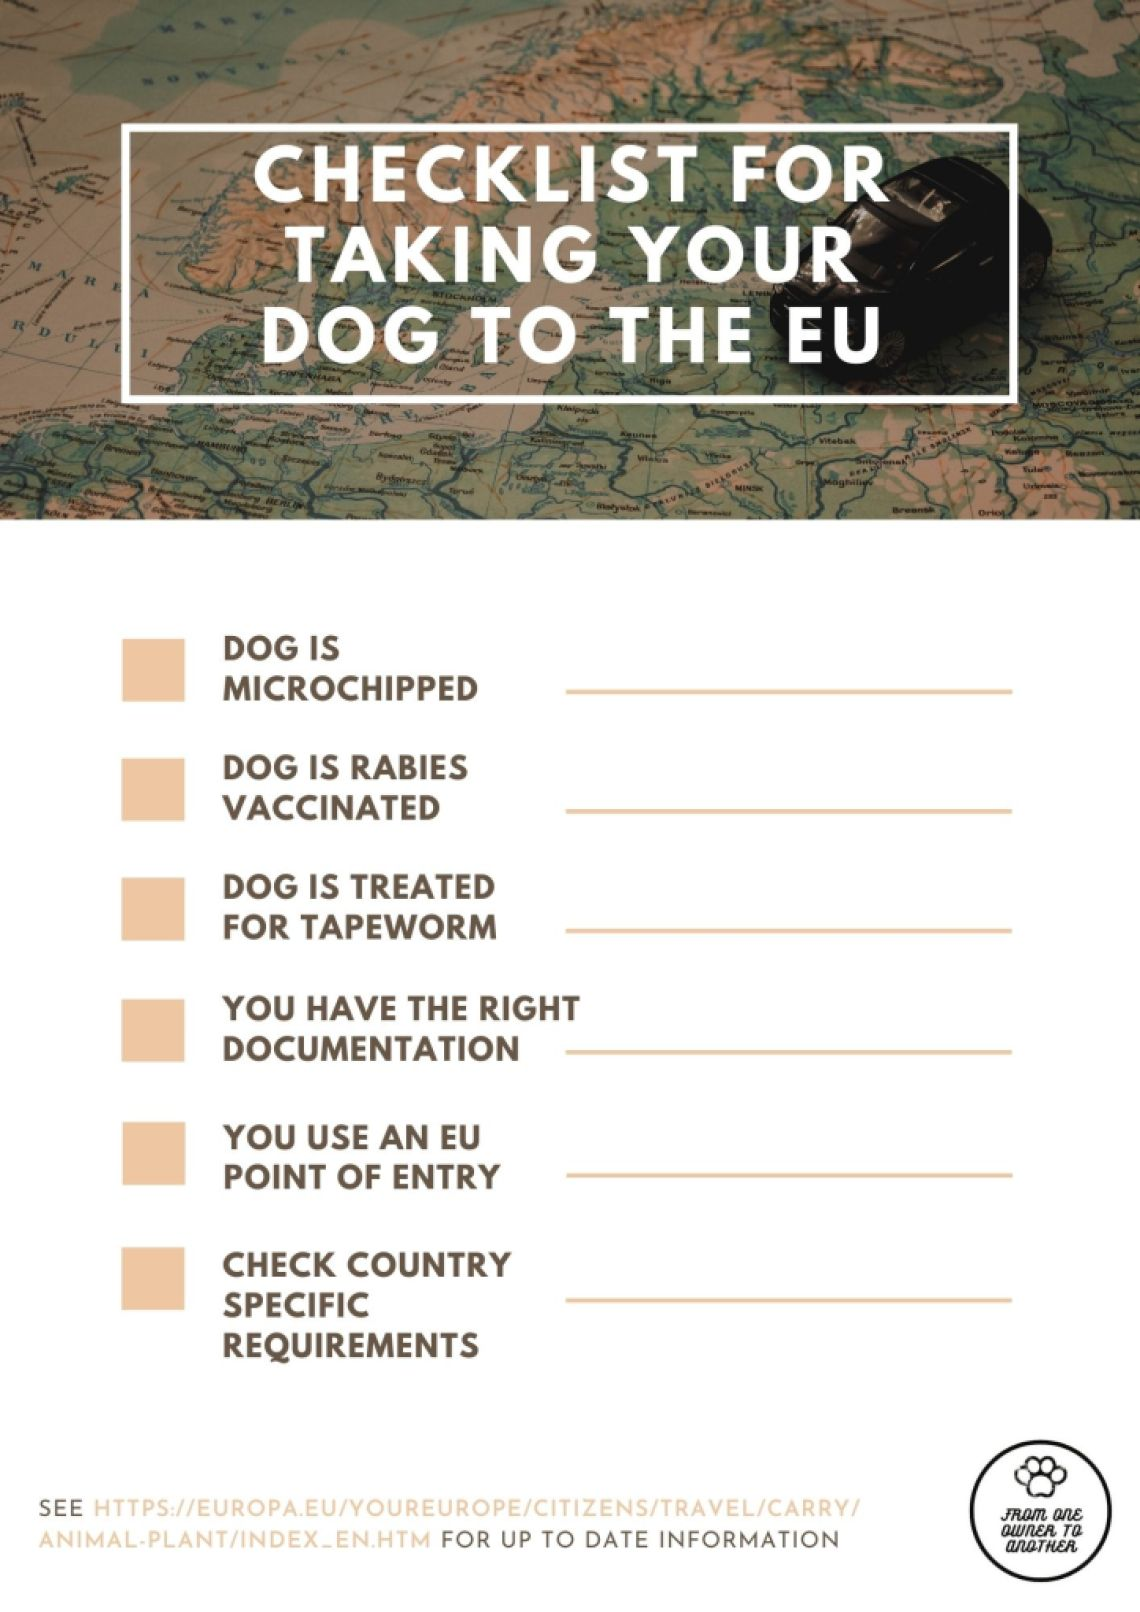 Checklist for taking your dog to the EU